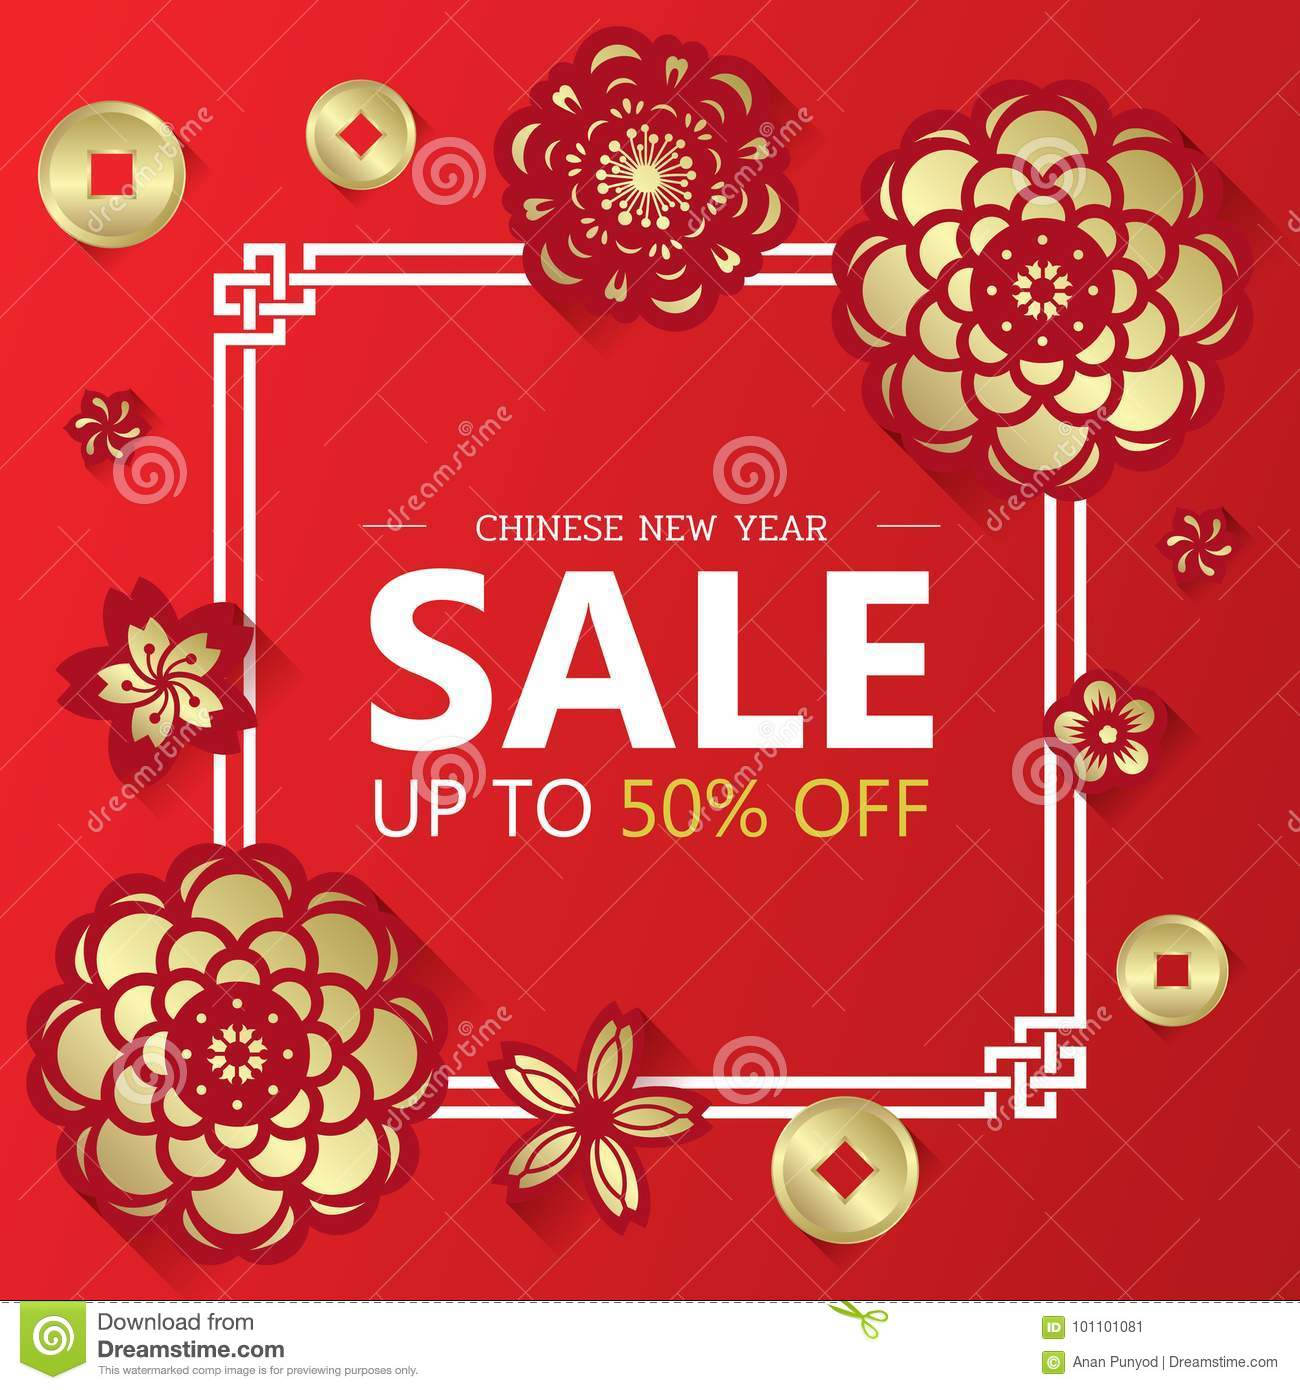 Chinese New Year Sale Banner With Gold Paper Cut Flower And